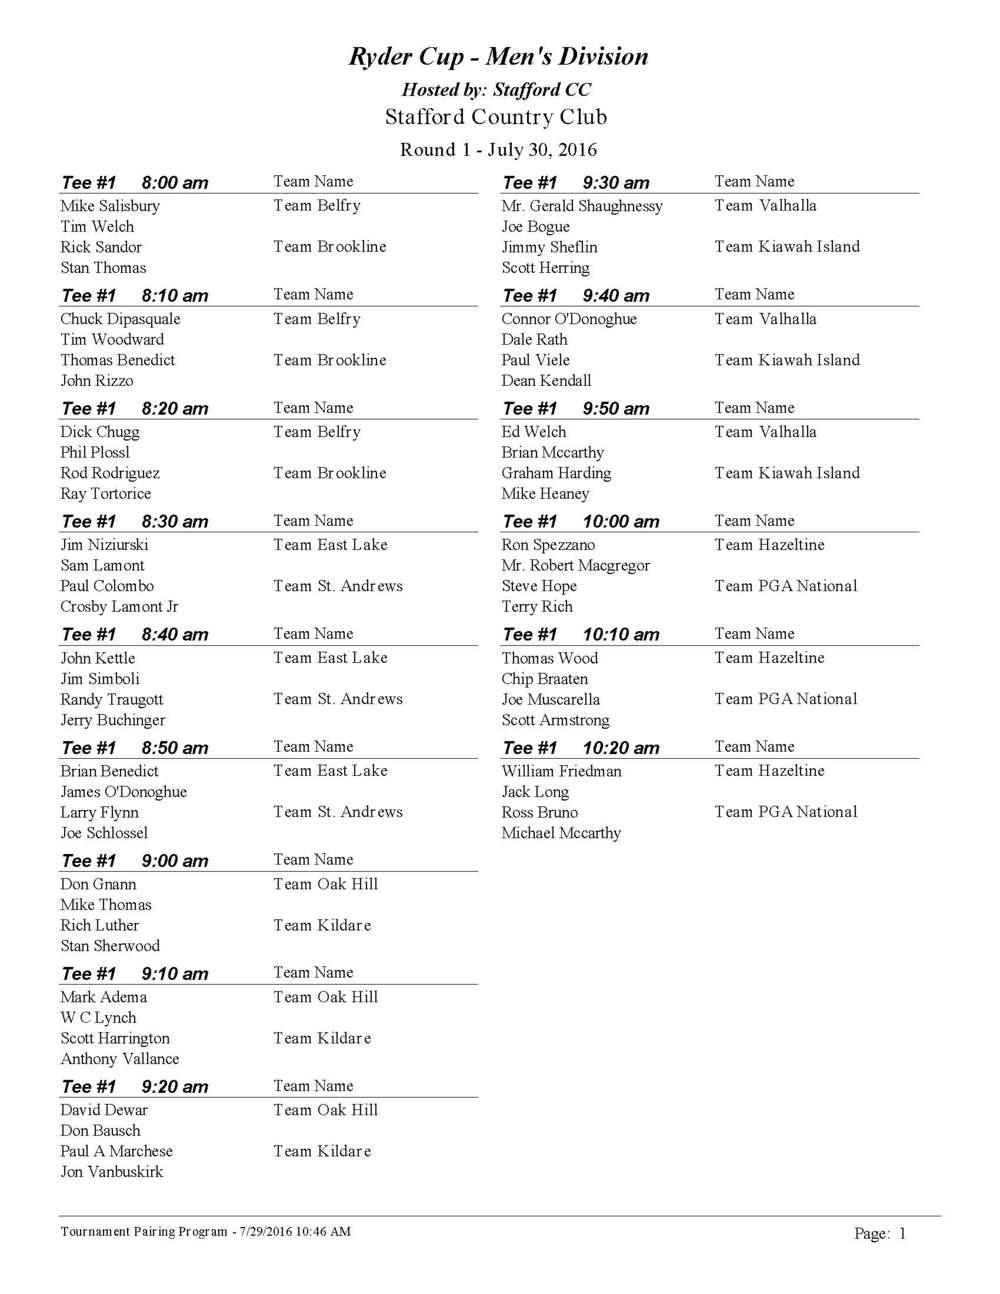 Ryder Cup - Men's Division Tee Times Rd. 1